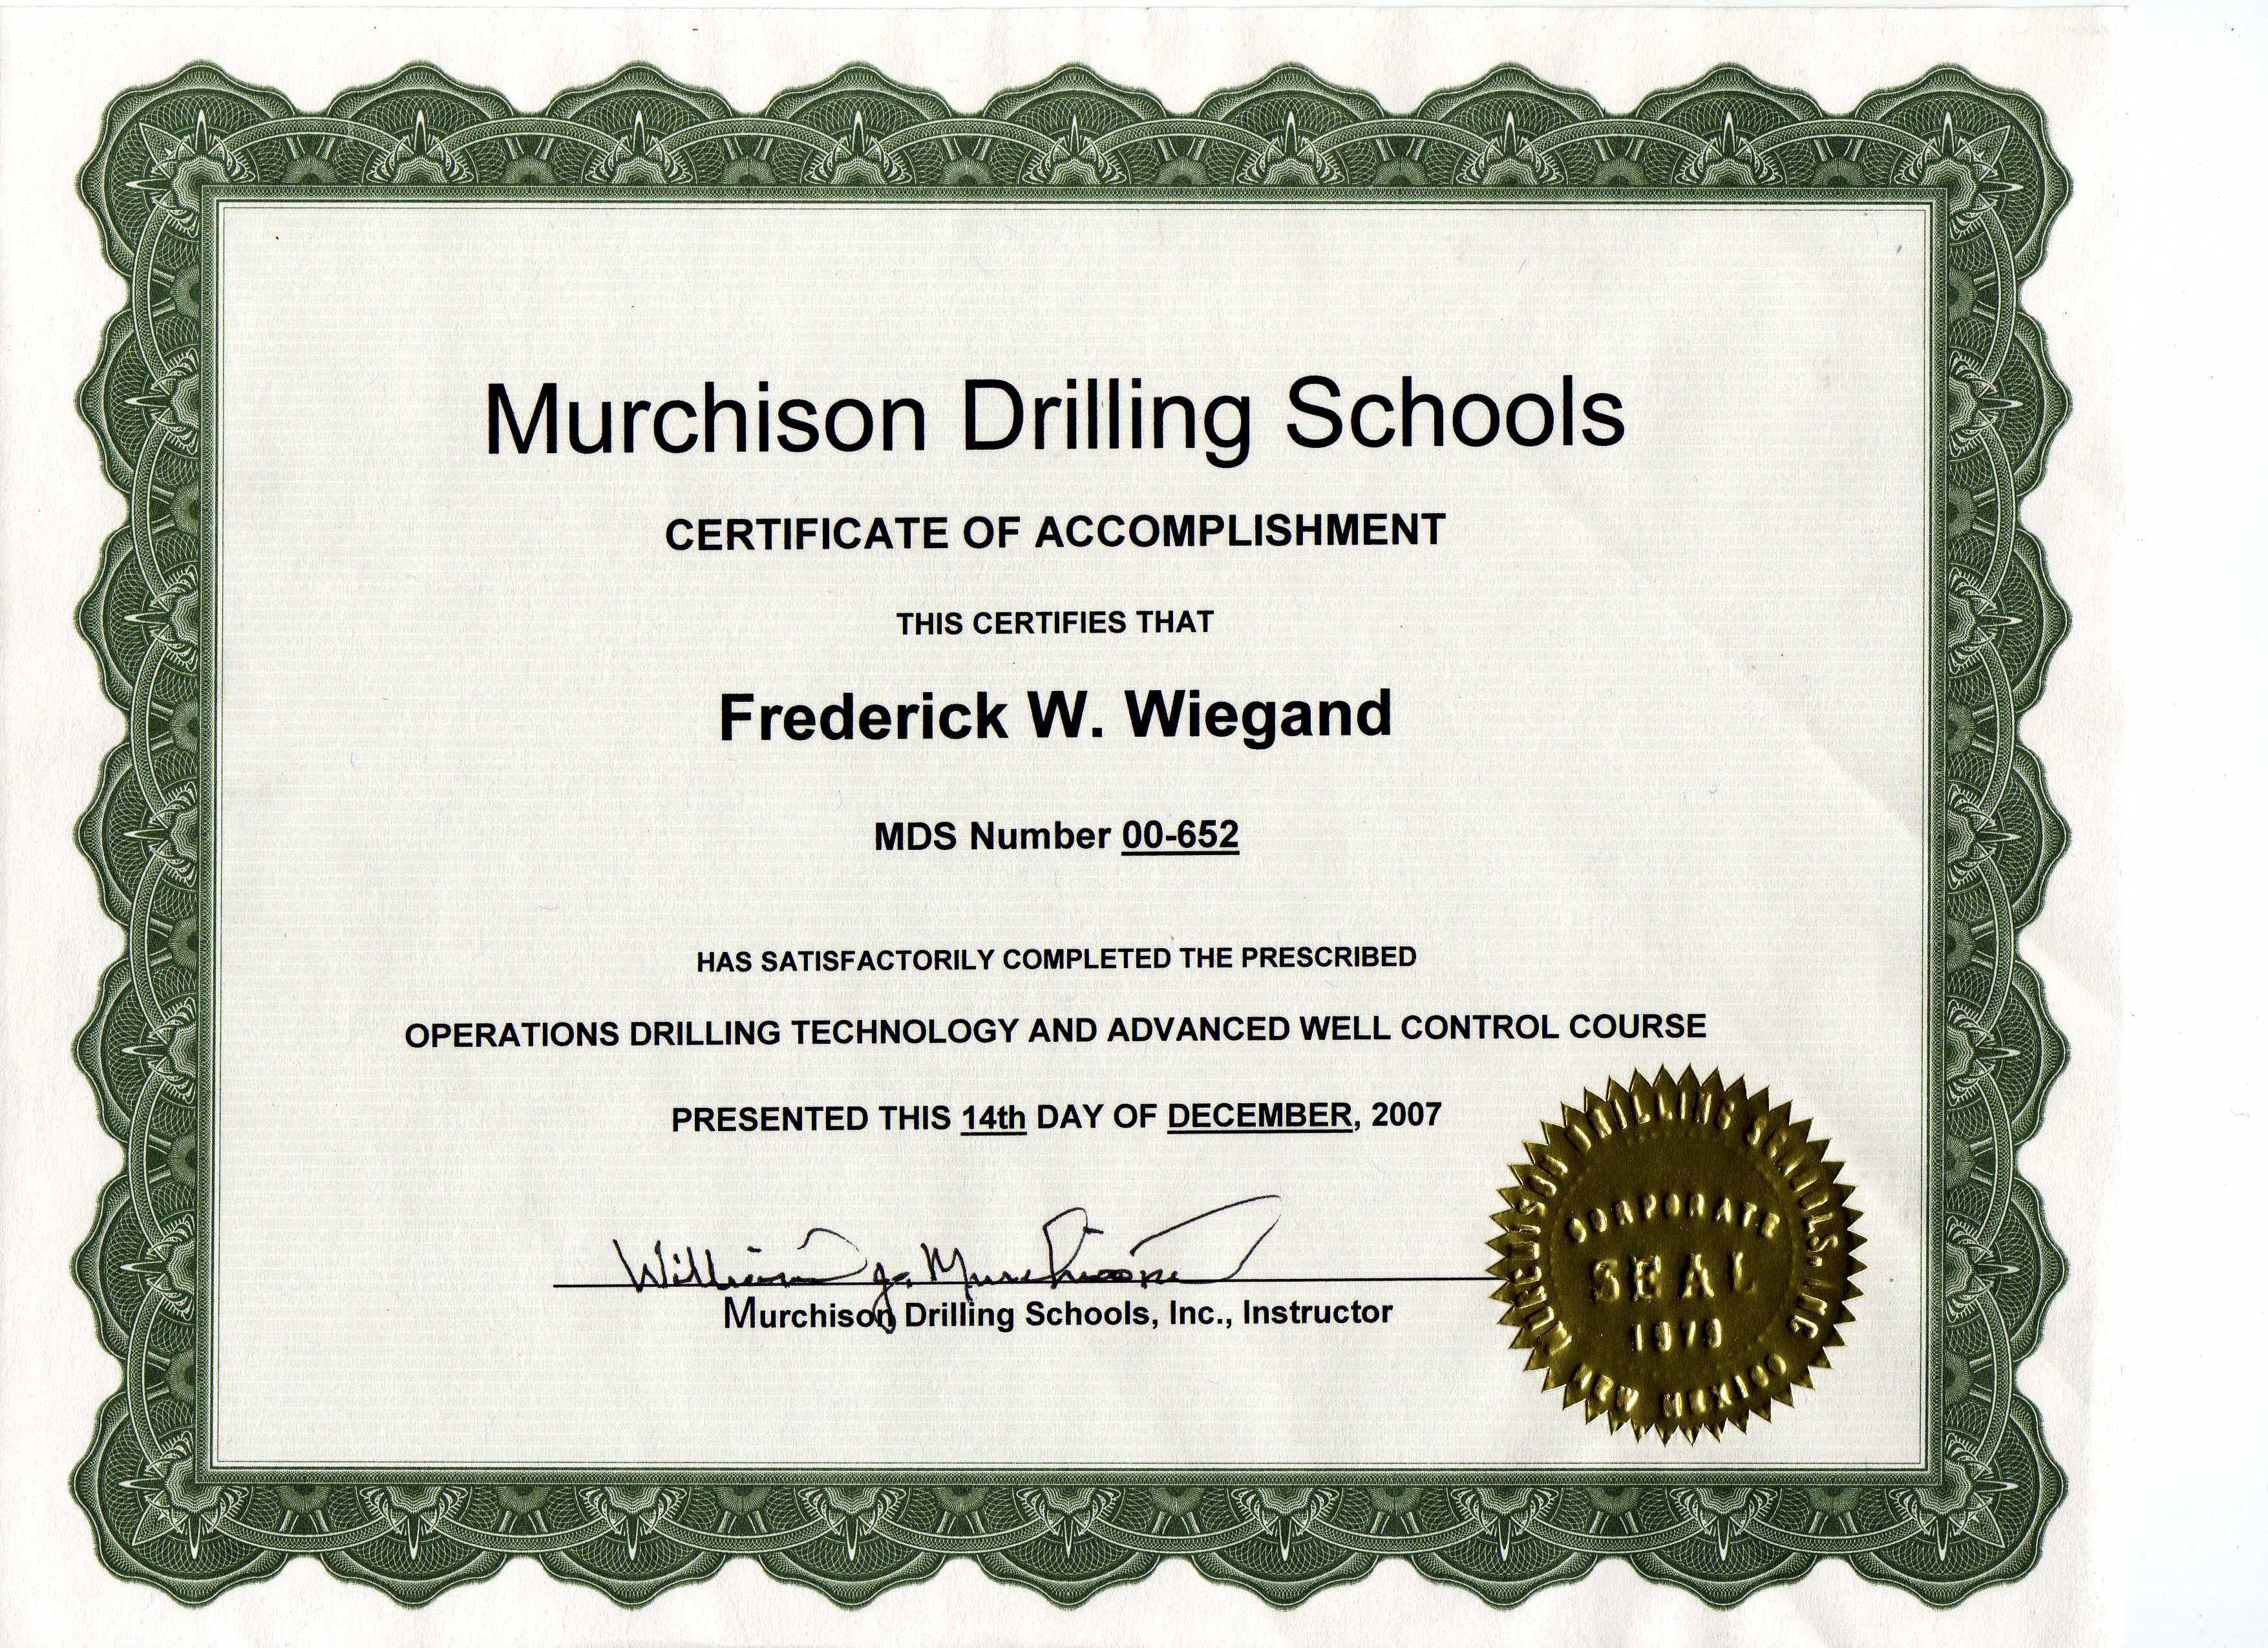 MurchisonDrillingSchoolscompletioncertificate14Dec07.JPG